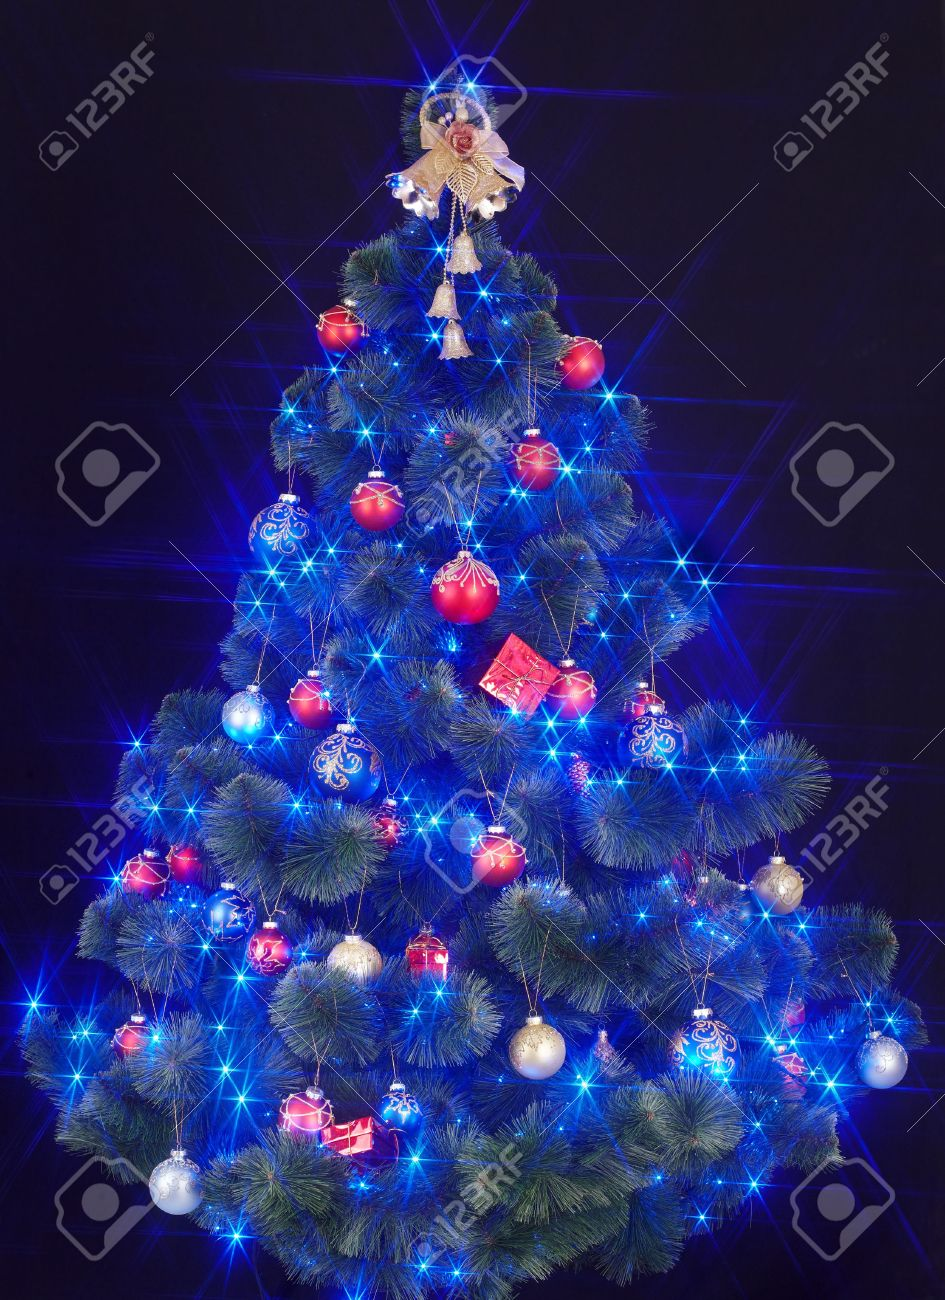 Christmas Tree With Light And Blue Star Black Background